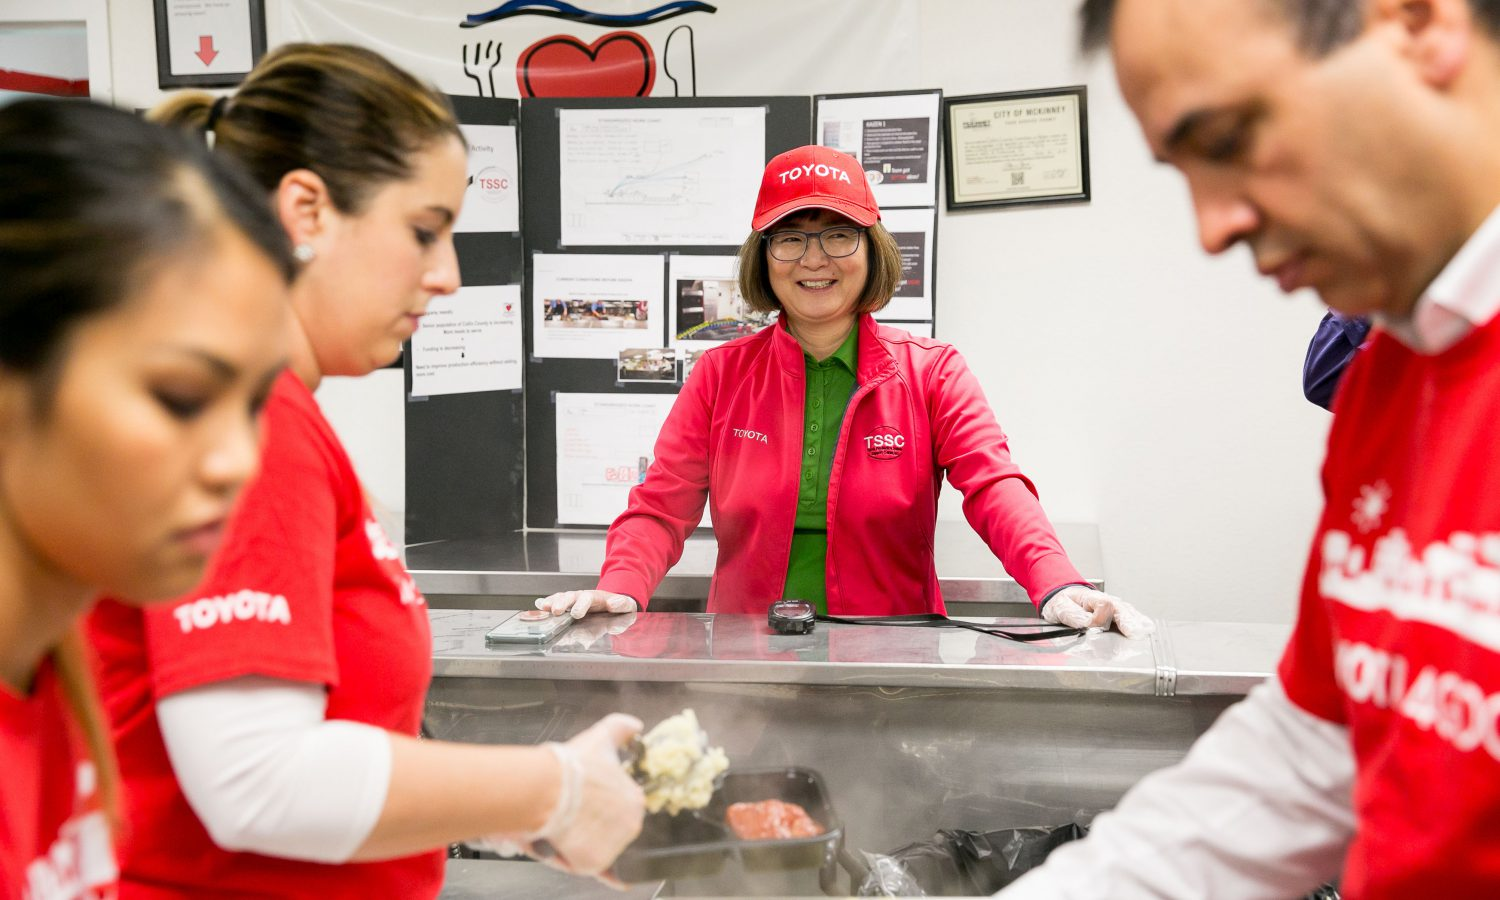 Mobilizing for Seniors: Toyota Begins Program with Two North Texas-Based Meals on Wheels to Help Serve More in Need